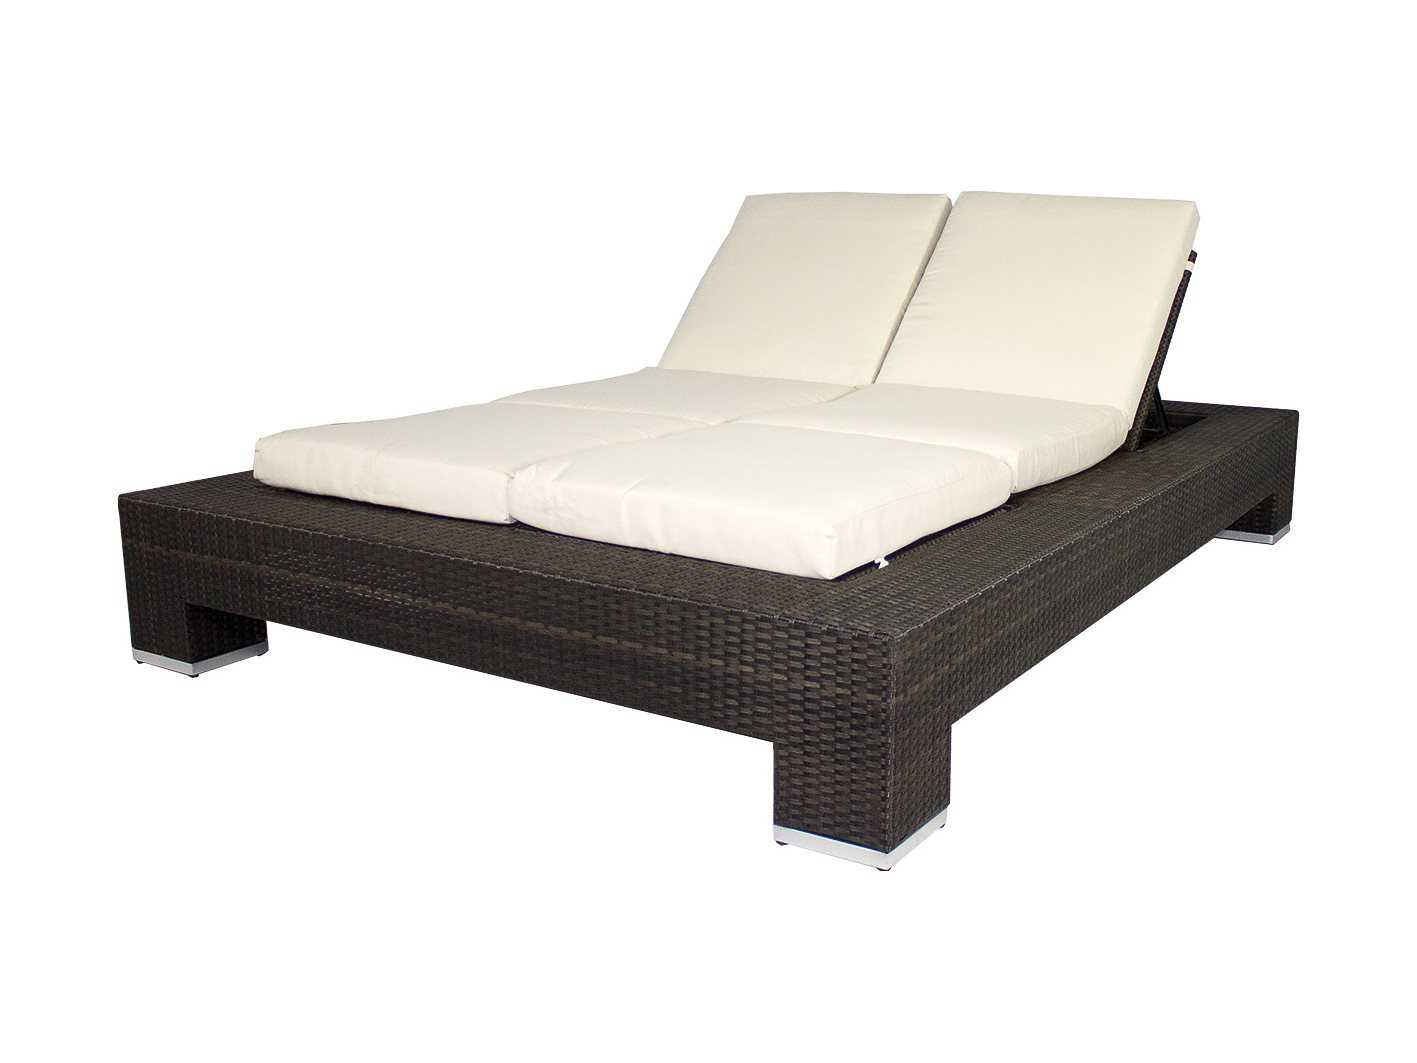 Source Outdoor Furniture King Double Chaise Lounge